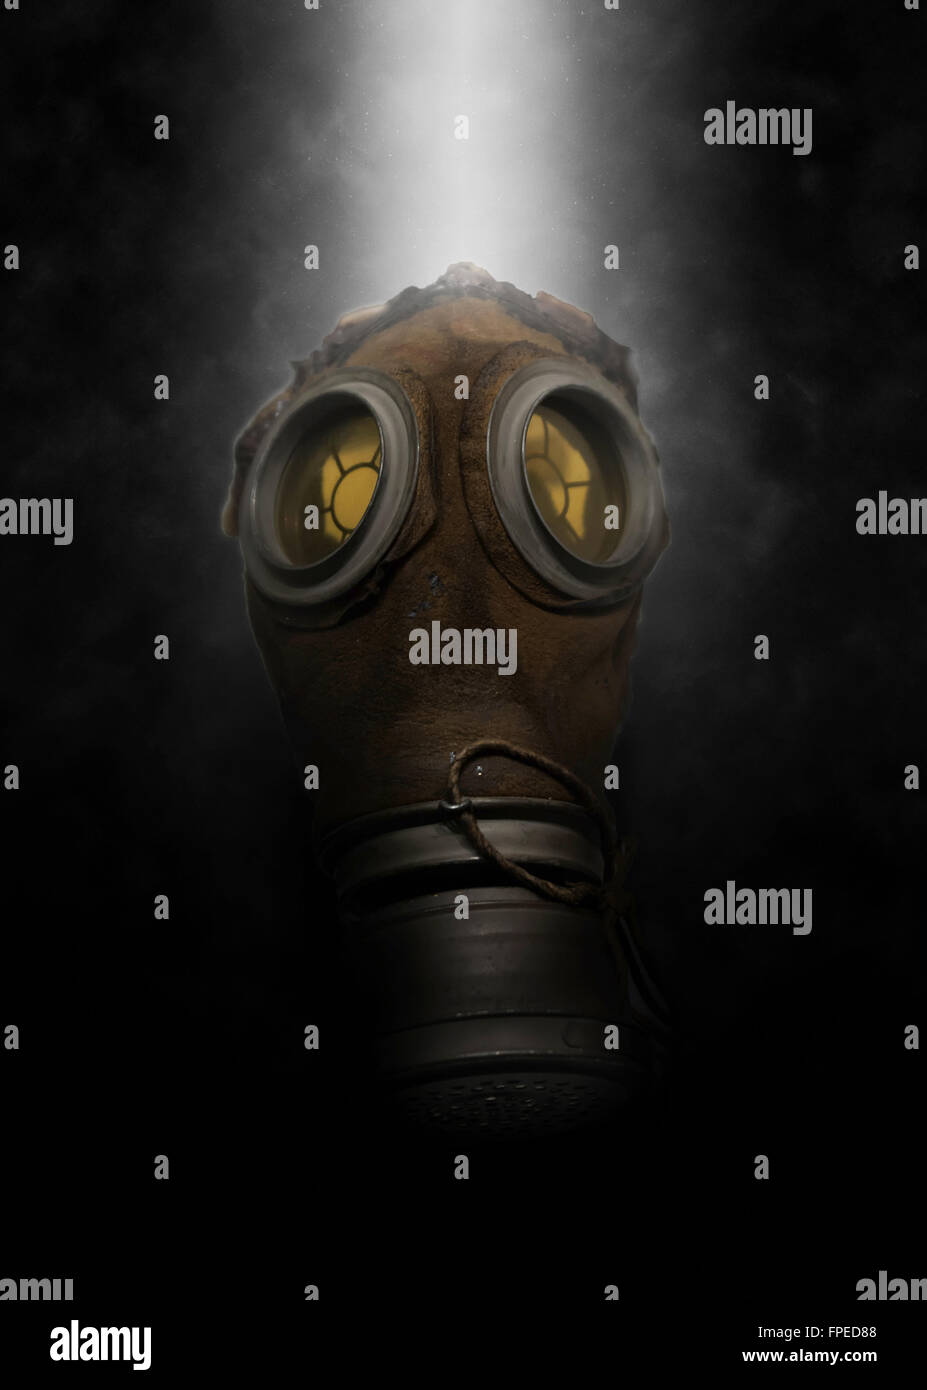 Single poisonous gas mask for soldier with with spray of mist behind it over dark gloomy background - Stock Image